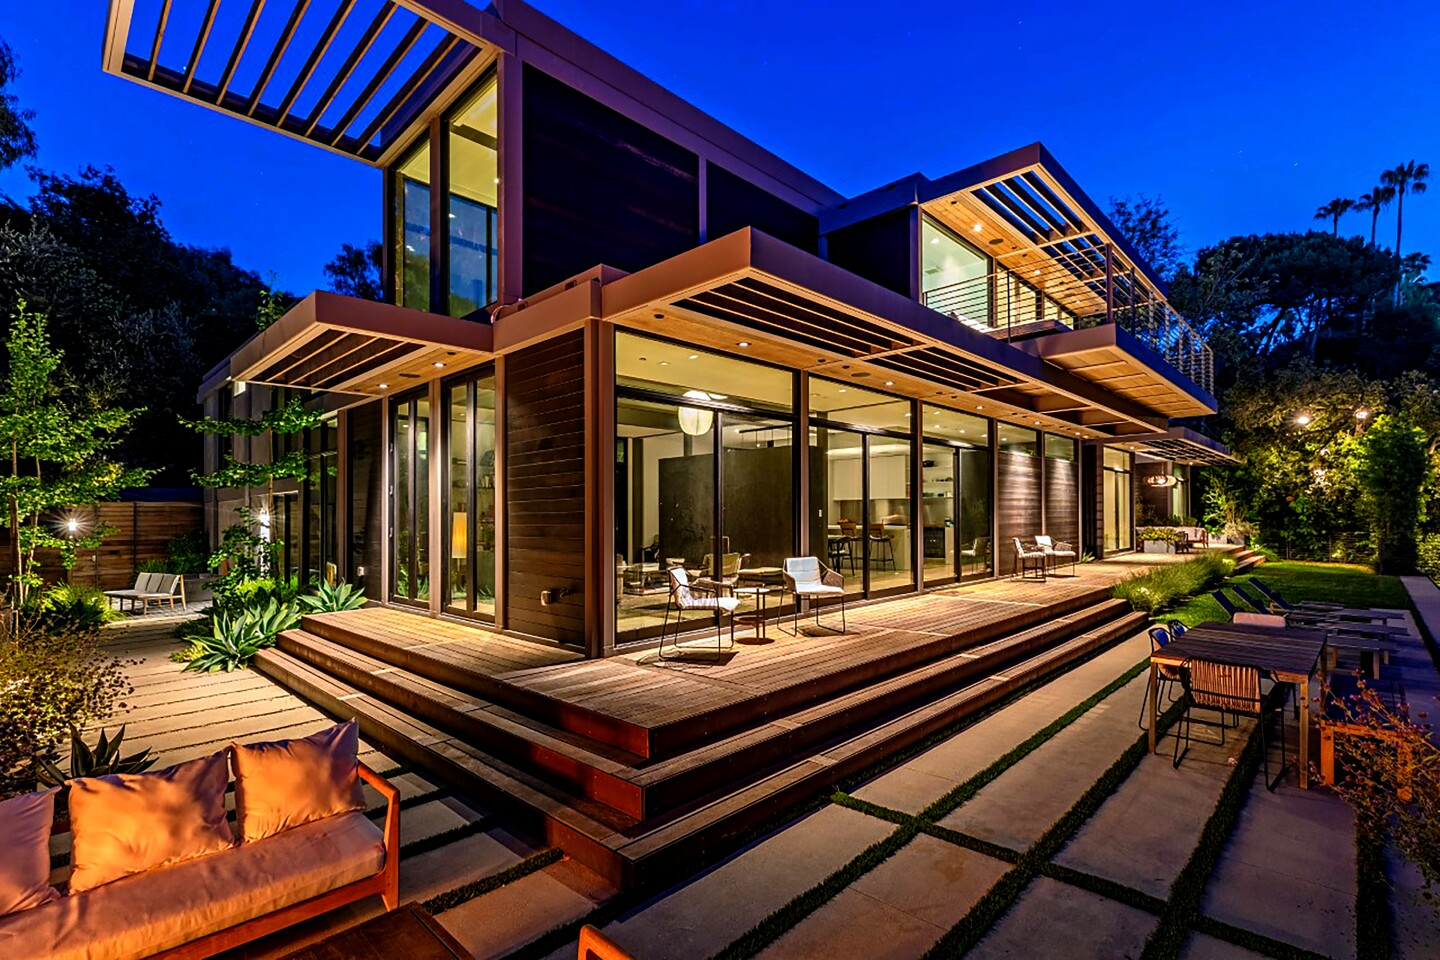 The Westside home of actor Will Arnett, listed for $10.995 million, is comprised of six modules that were built off-site and later assembled on location. Walls of glass, overhanging eaves and open-concept living spaces are among features of the home. Outside, there's tiered decking and a swimming pool.